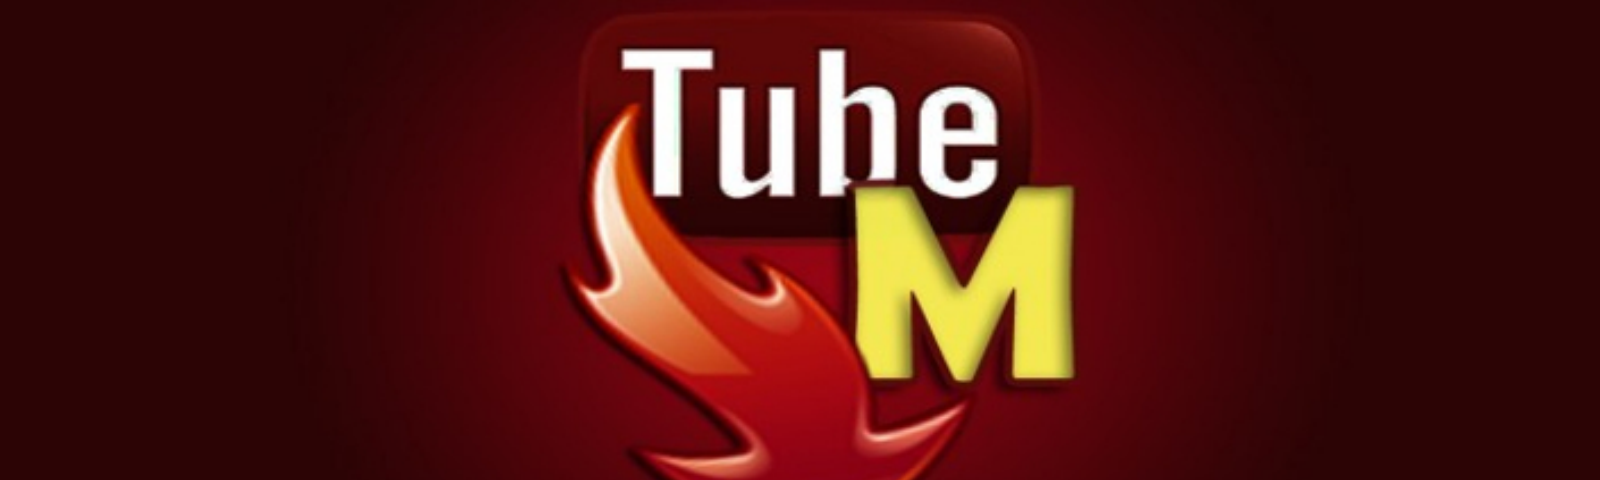 TubeMate YouTube Downloader APK - android apk - Medium